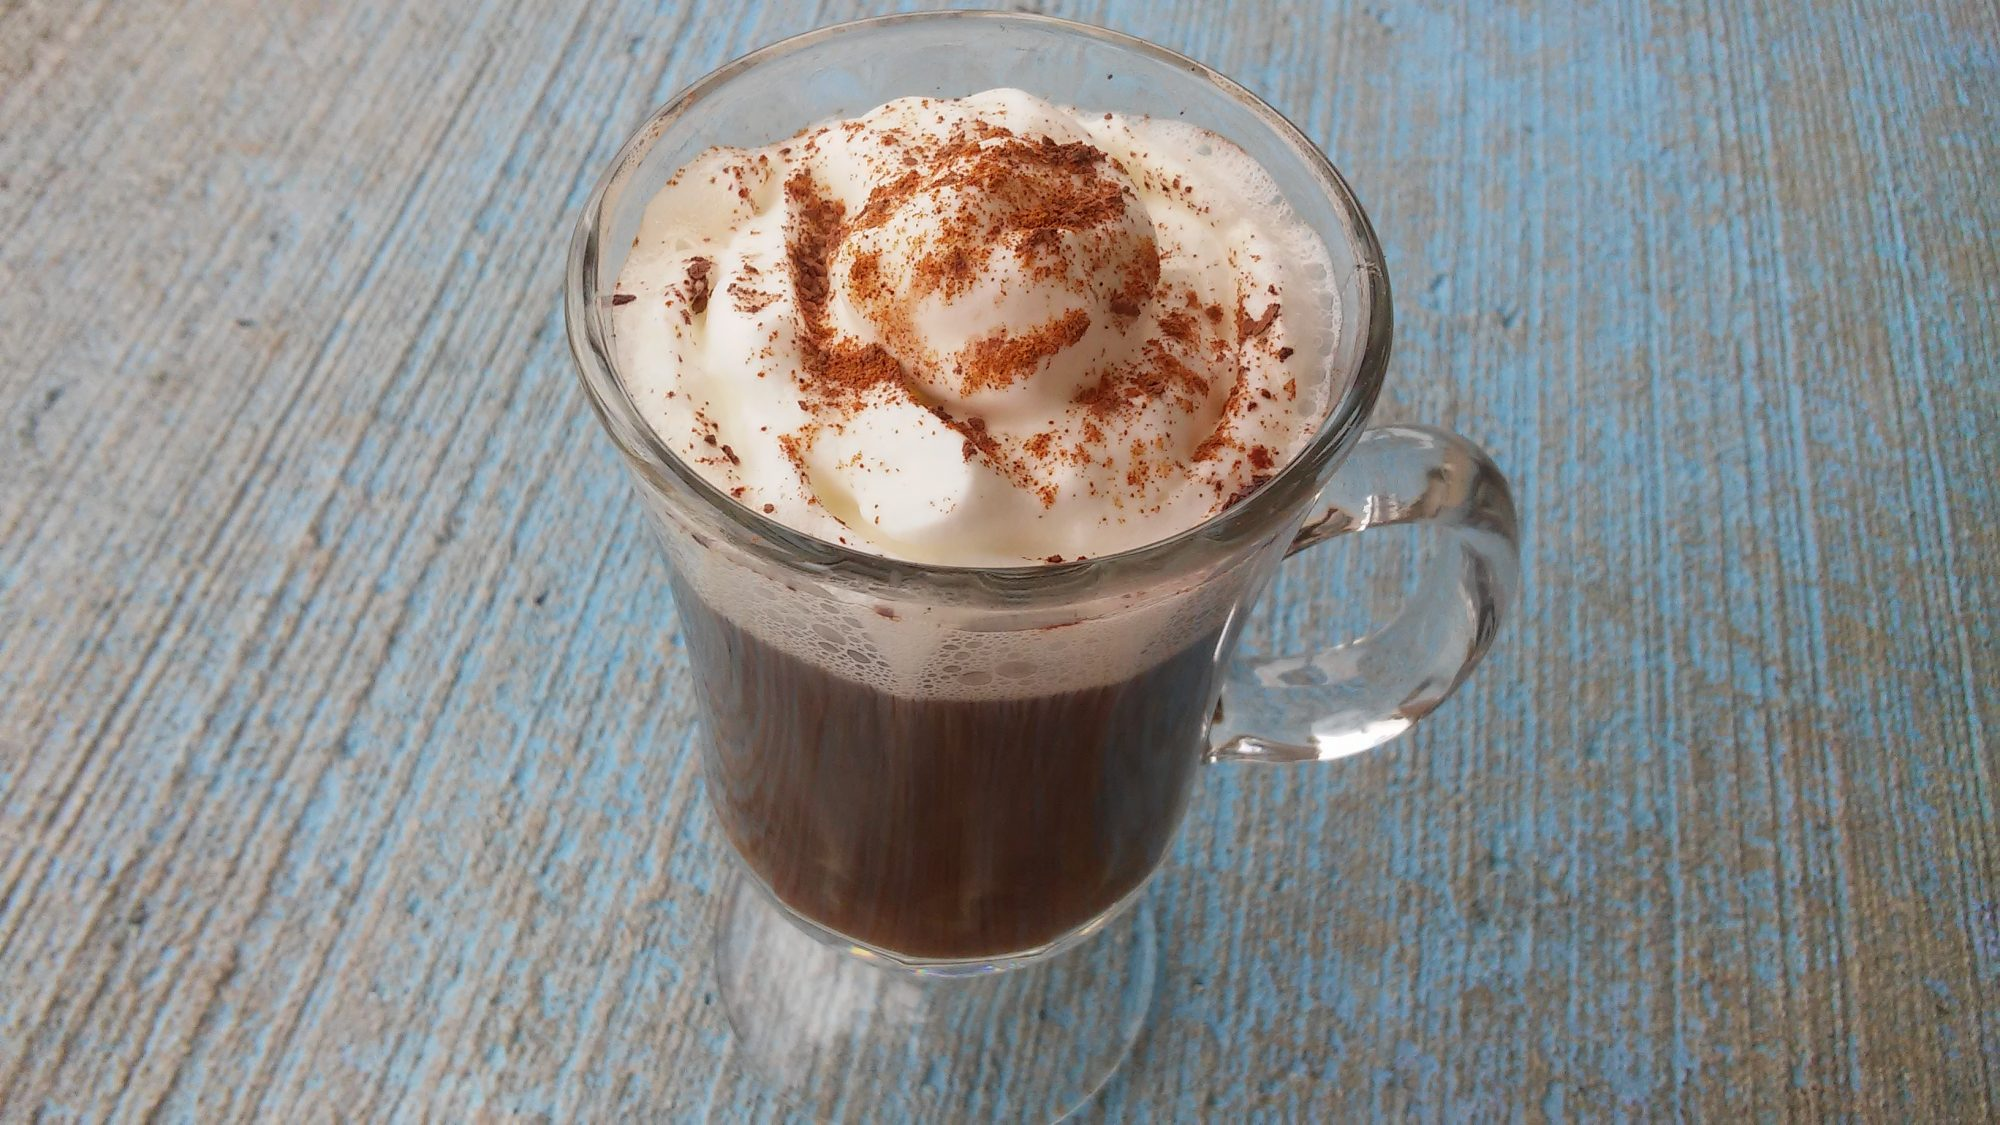 mexican tequila drink with whipped cream and cinnamon in glass